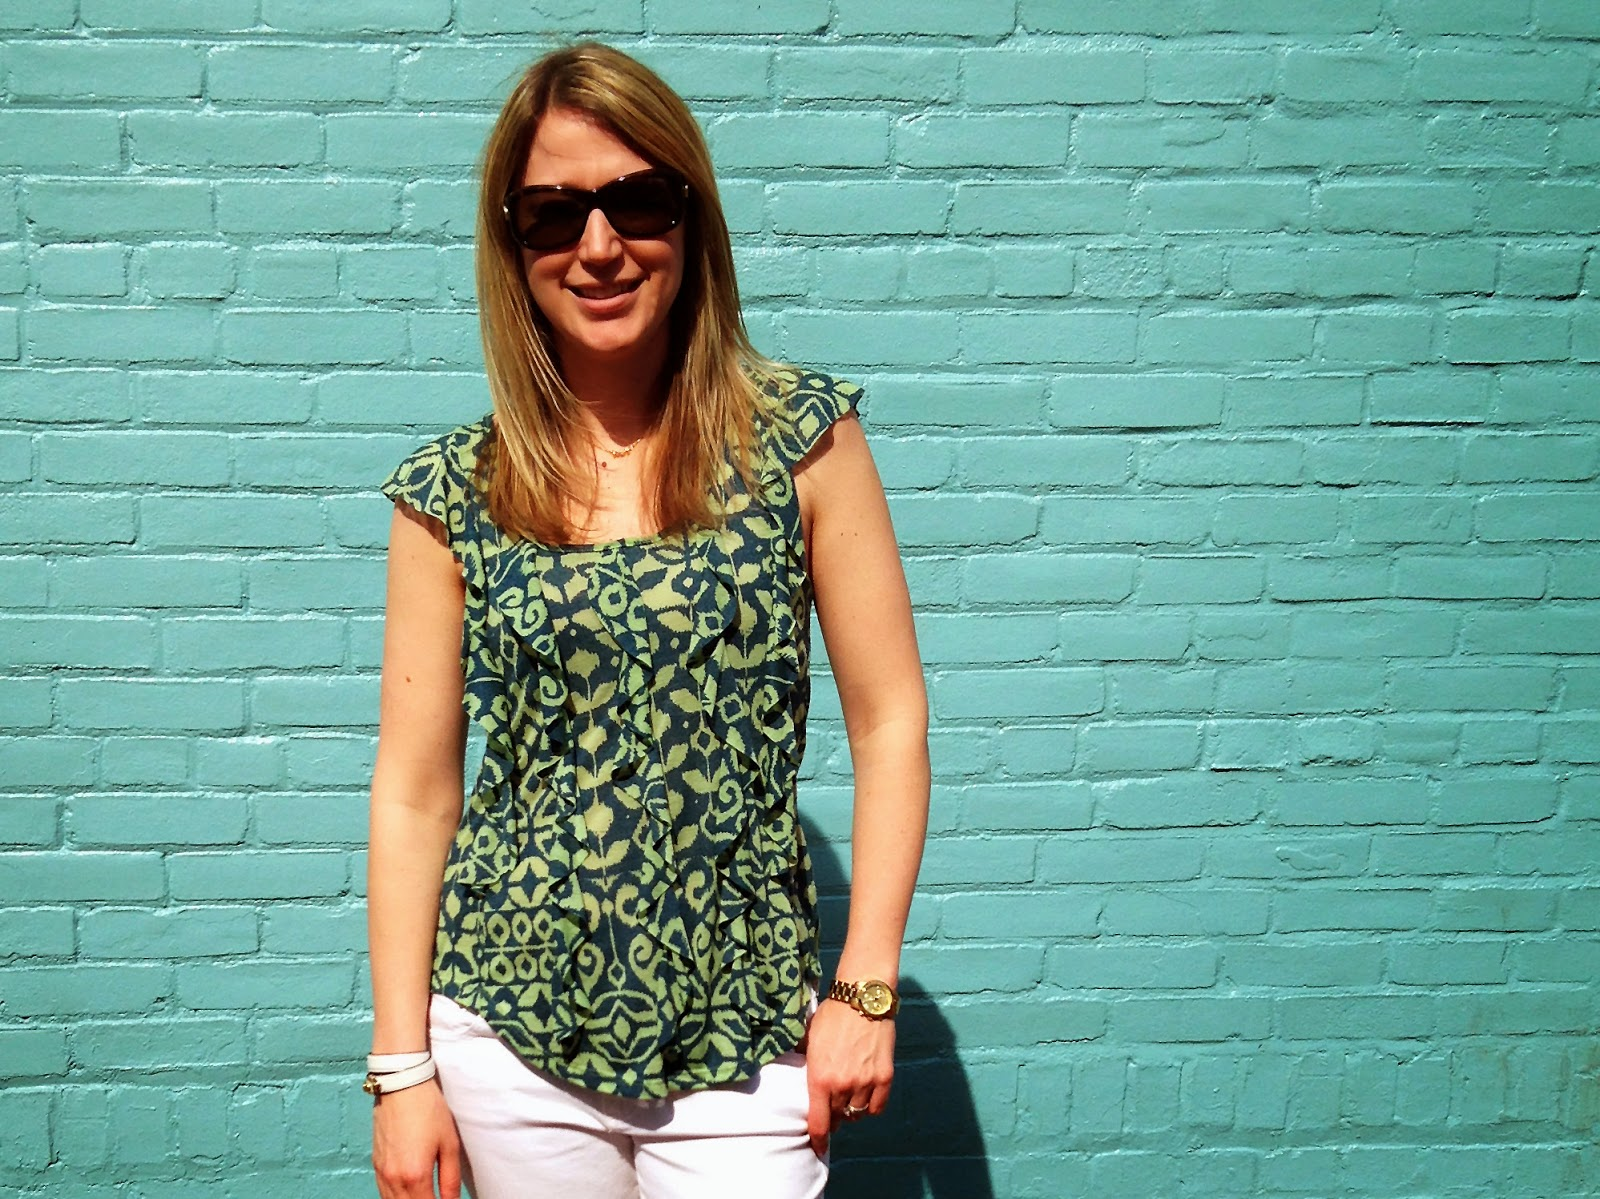 Green Printed Top + White Skinny Jeans // The Salty Hanger